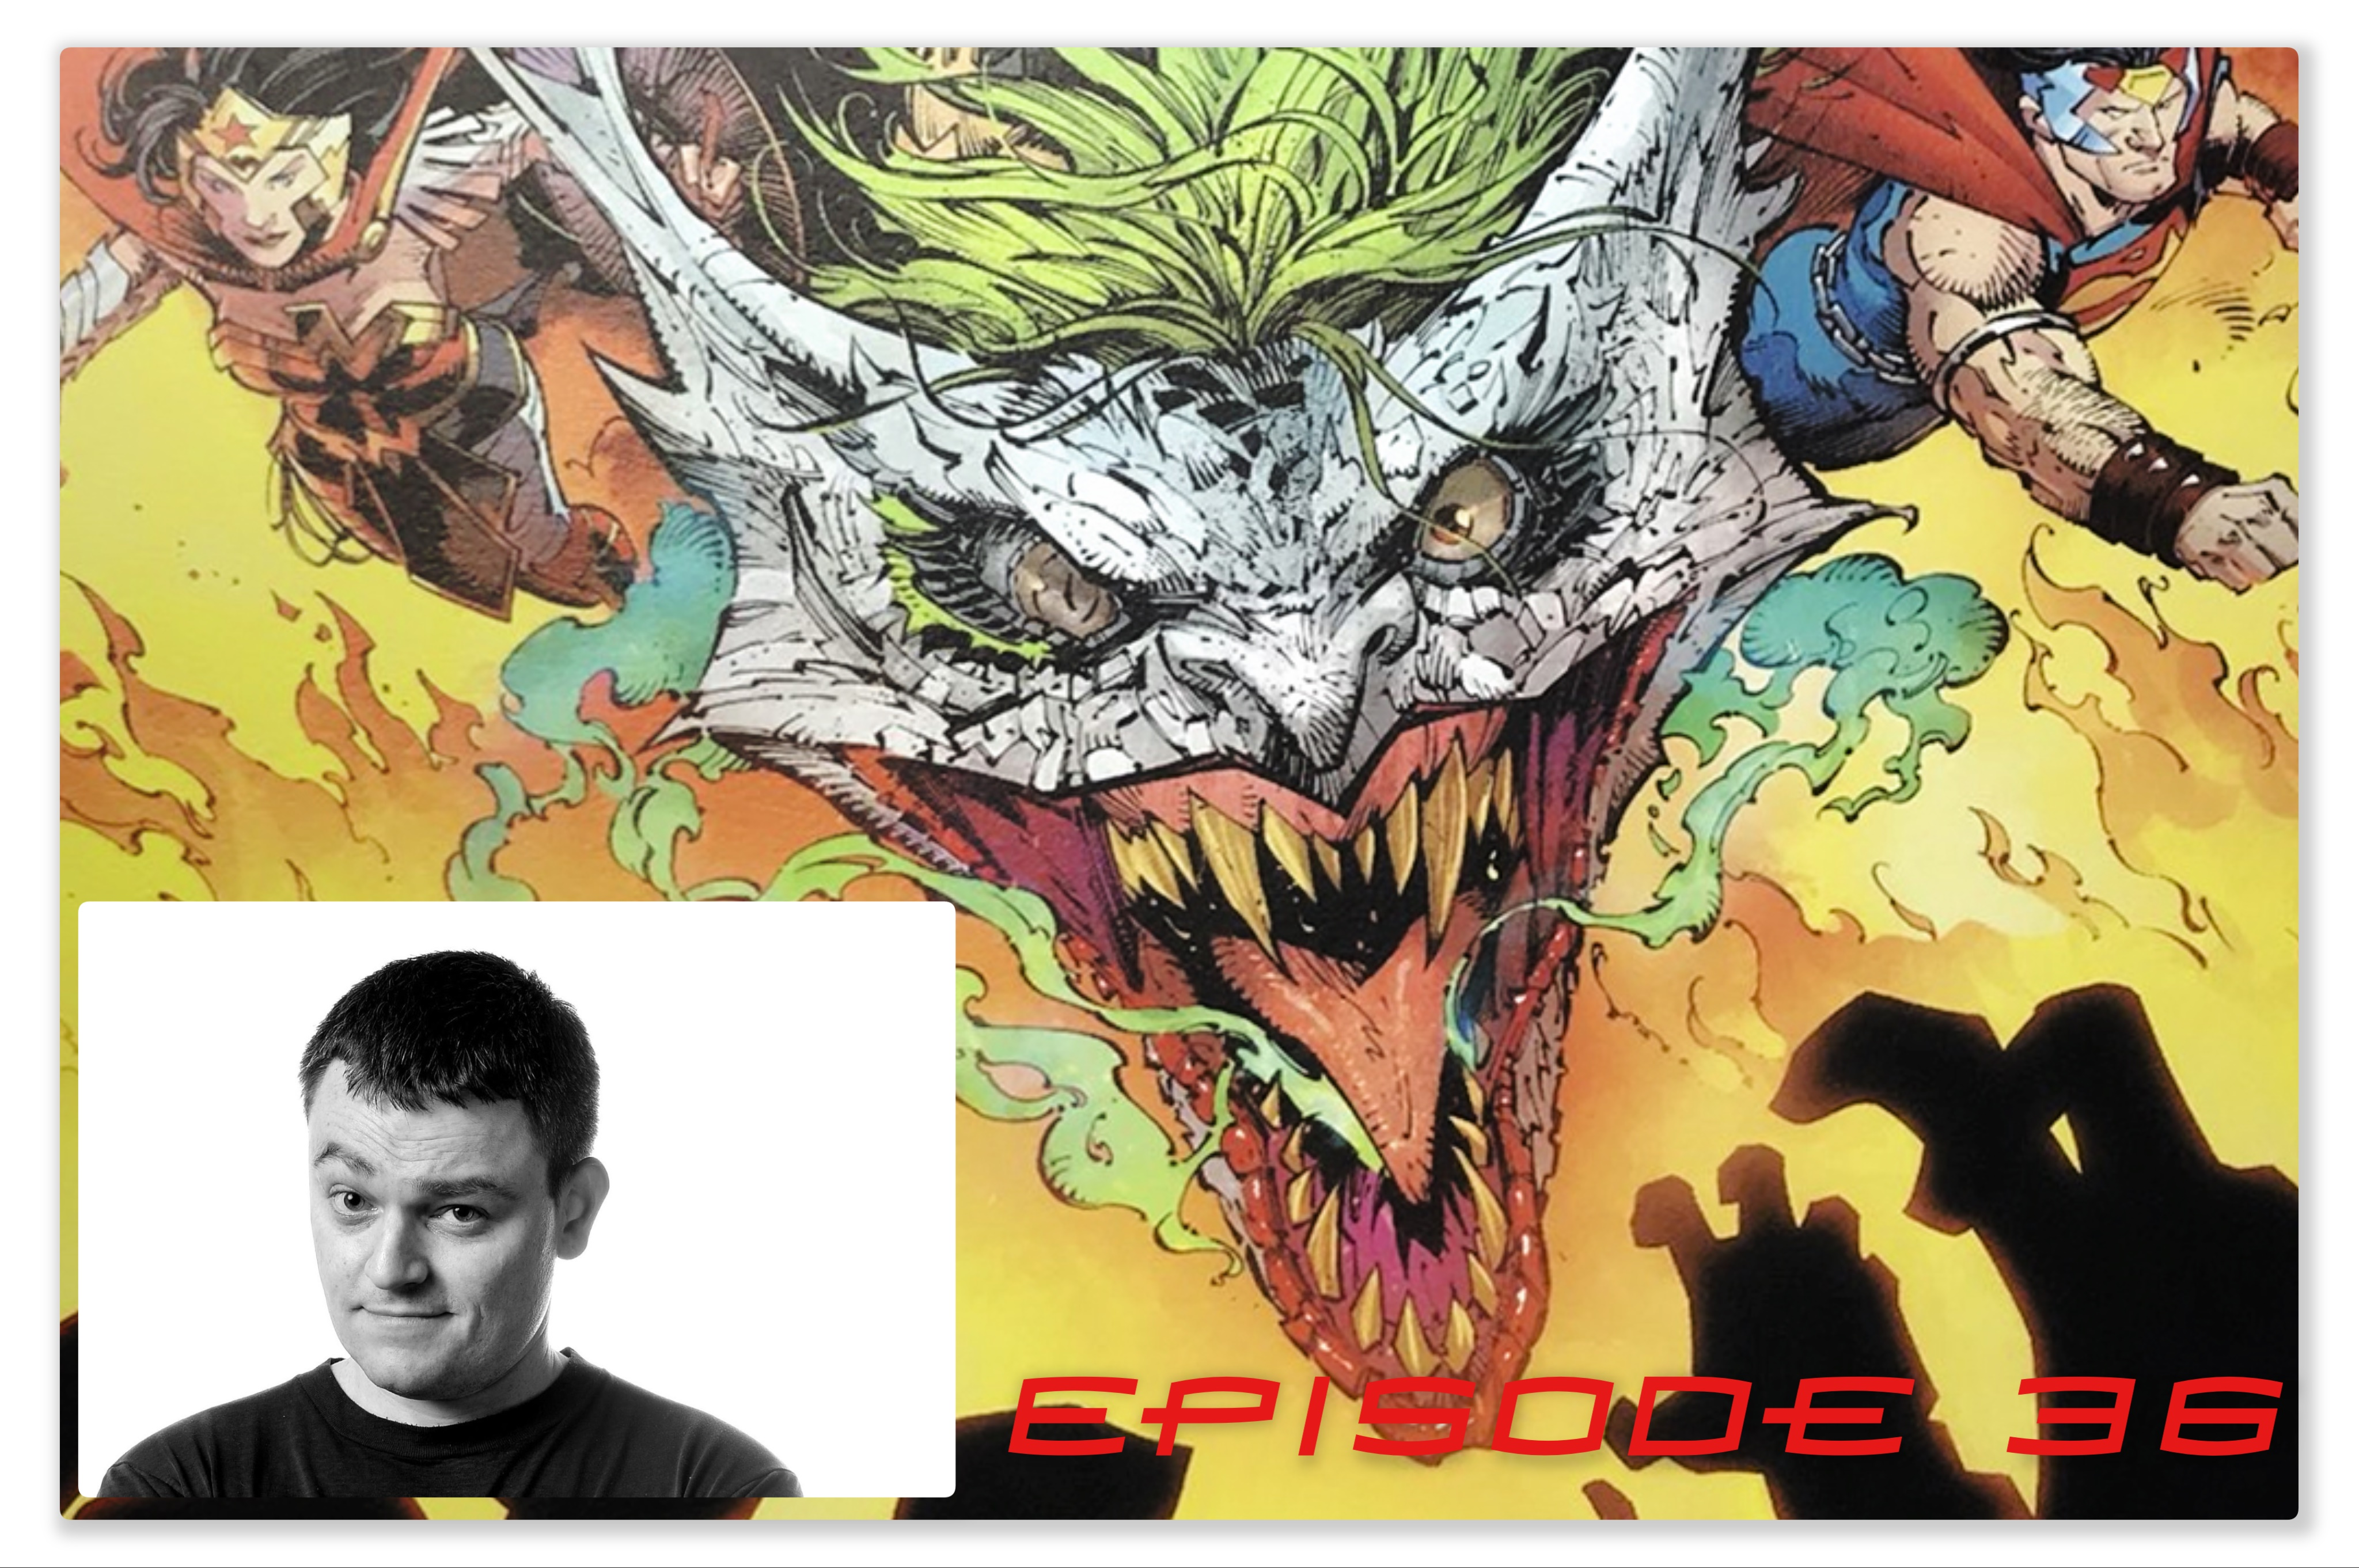 Episode 36: Scott Snyder and I Talk about Metal, Batman and the Signal and Joker Dragons